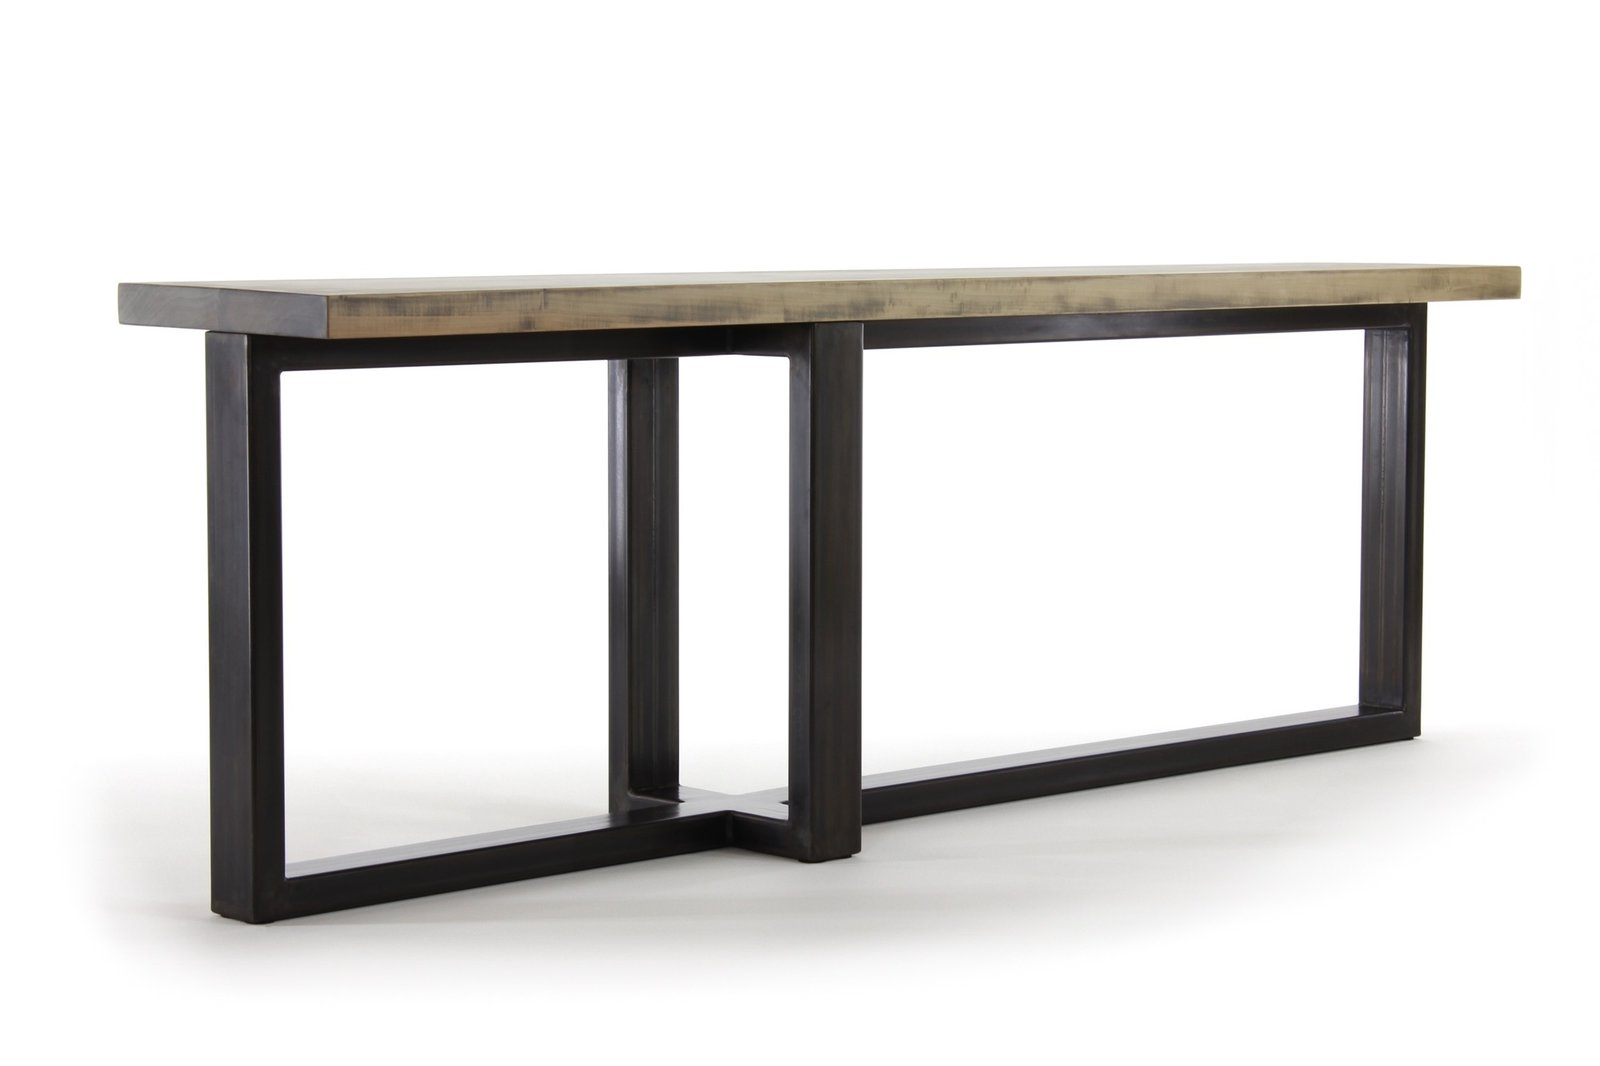 handcrafted by seventeen20 // expanding our concord collection, the console table is a scaled down version of the dining table, taking flight in an entryway or behind the sofa. shown in our worn maple wood finish with darkened steel. #industrial #modern  Consolas